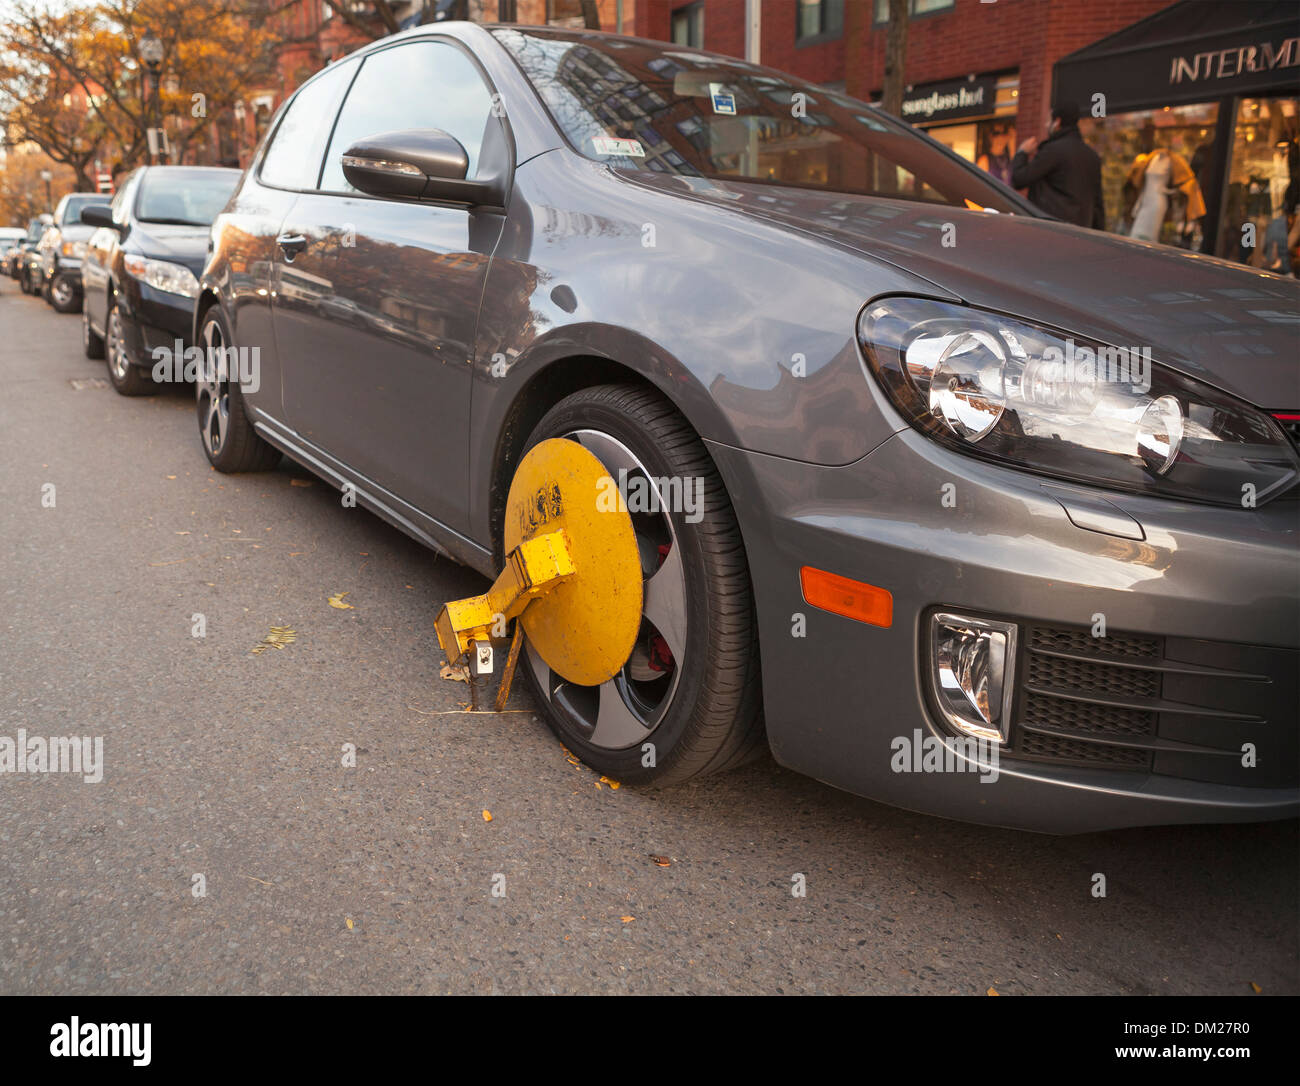 A yellow wheel lock is attached this car's tire to prevent theft. Stock Photo